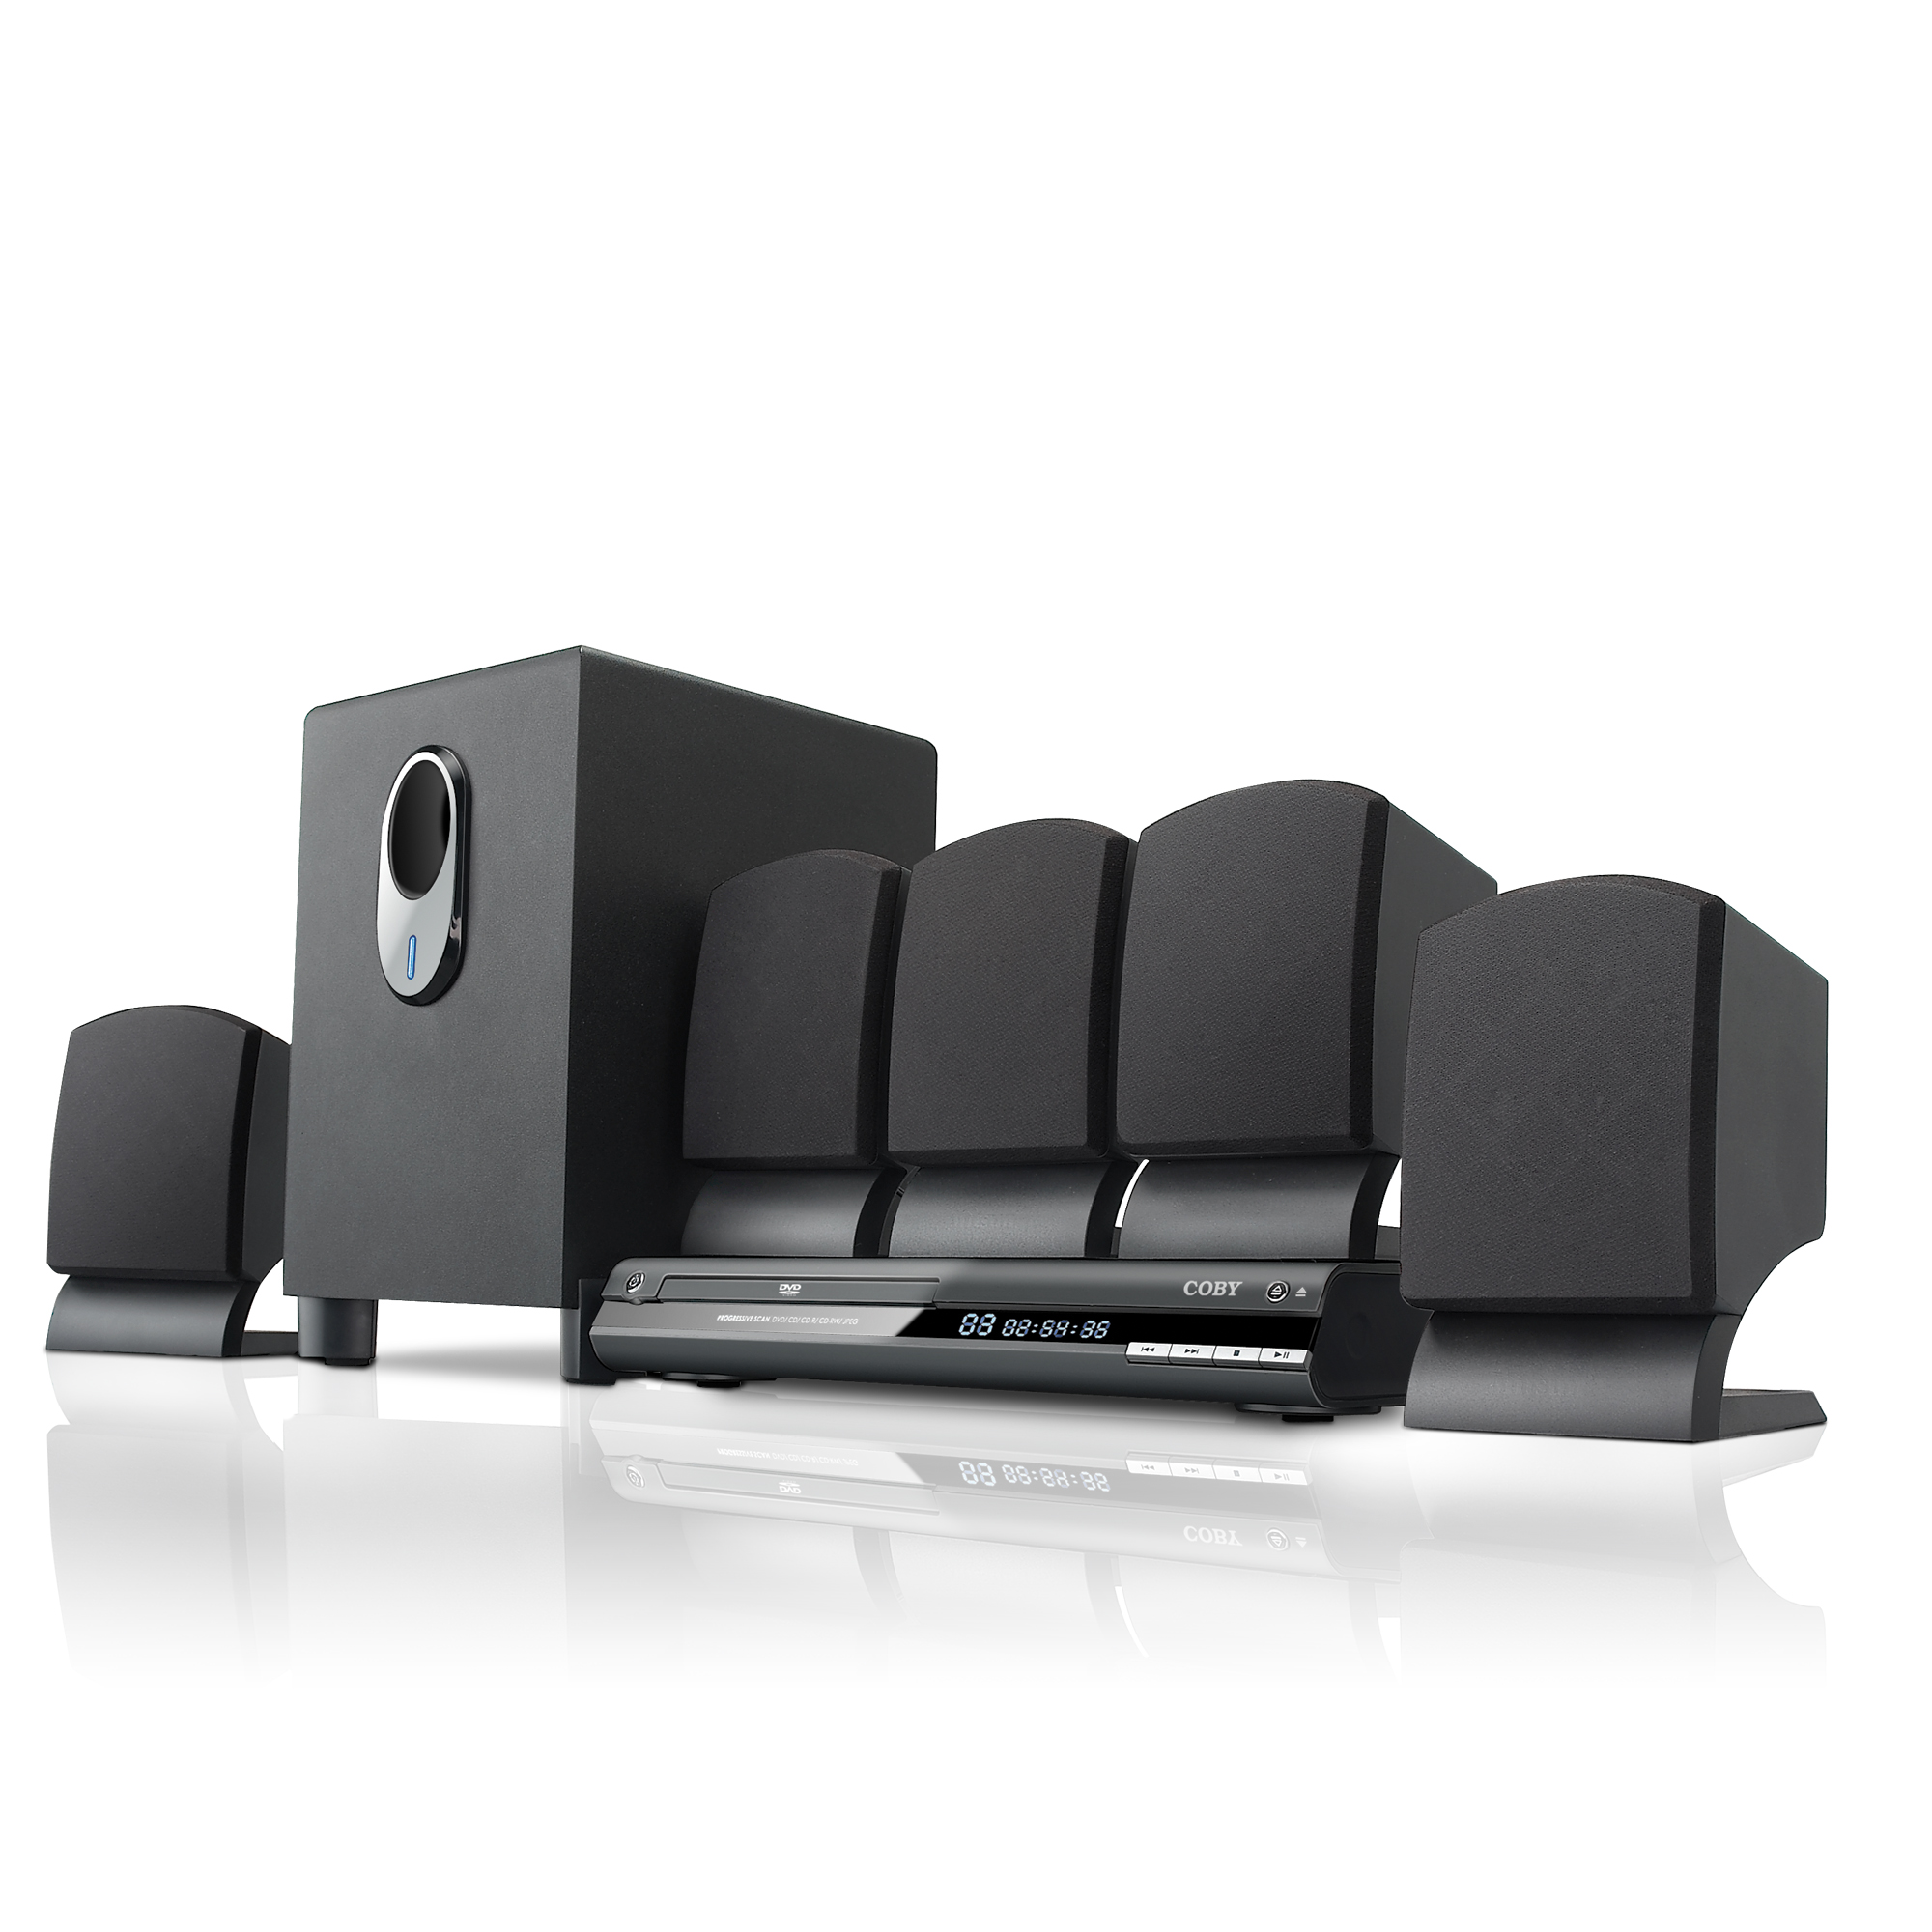 Review of Coby DVD765 5.1-Channel DVD Home Theater System